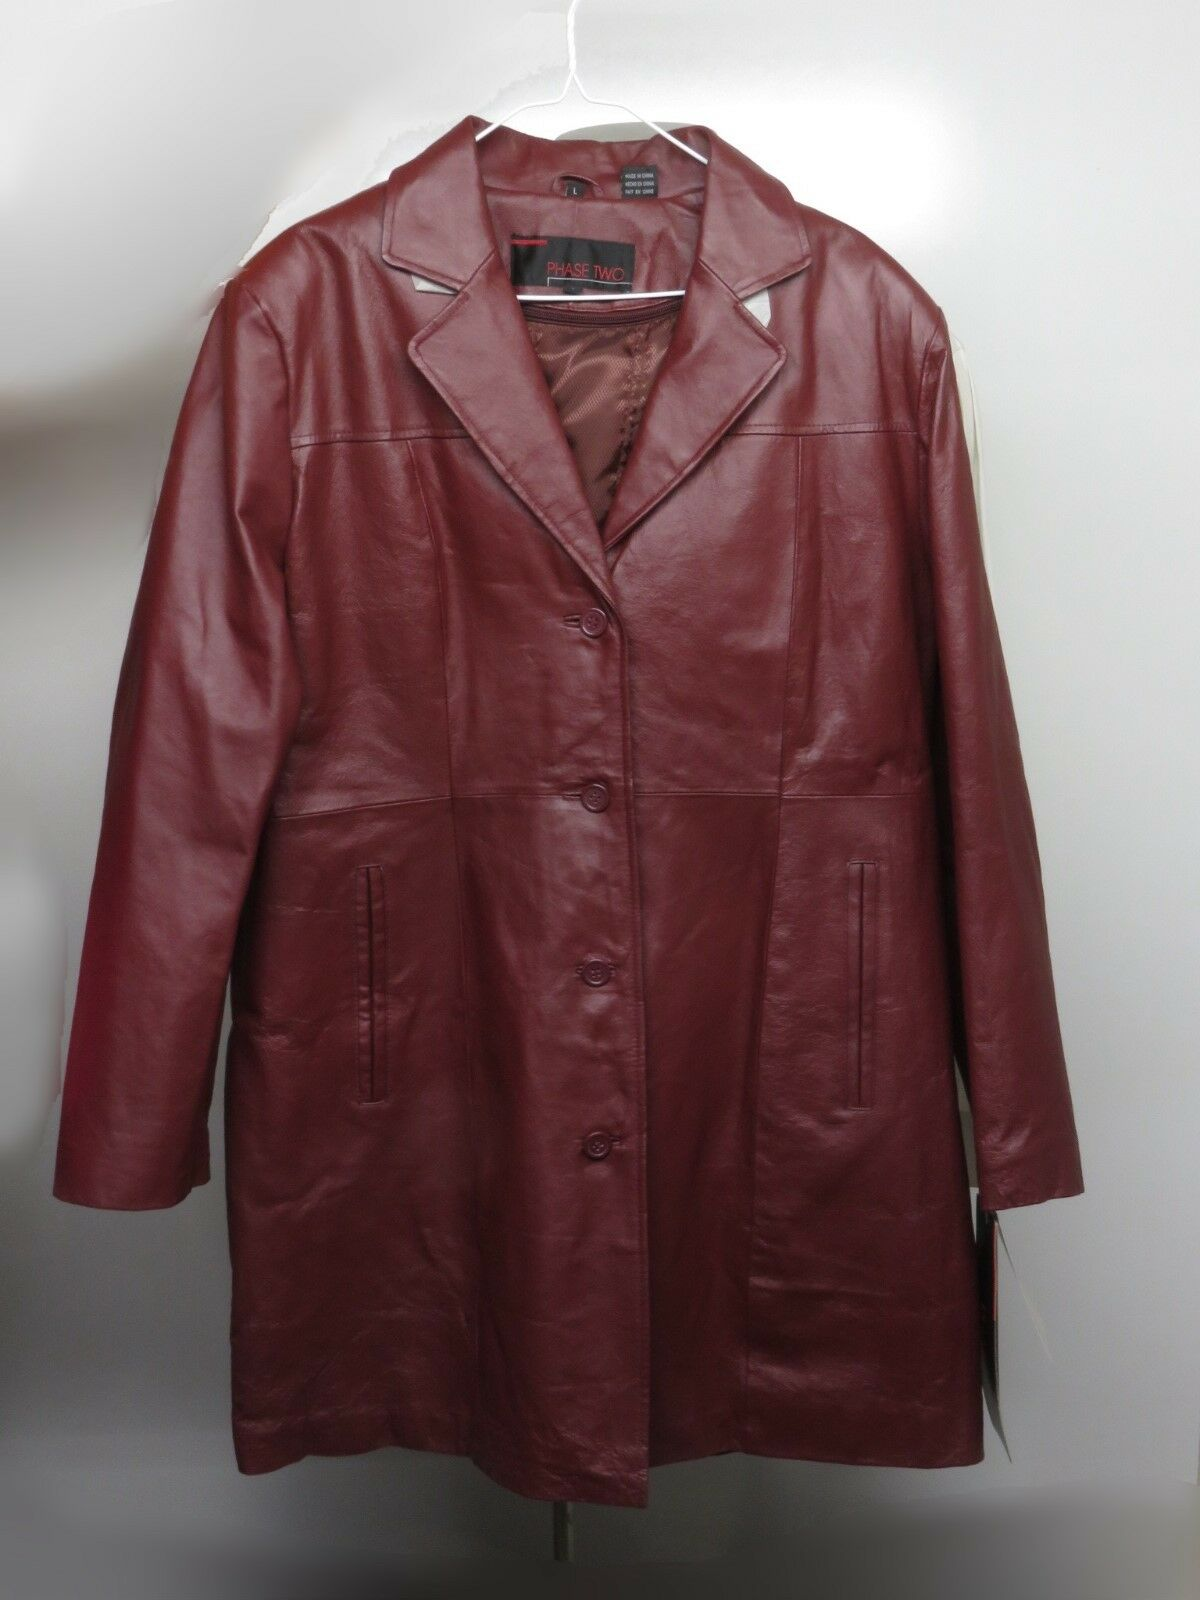 PHASE TWO Womens LEATHER Coat Size L Wine color NEW NWT